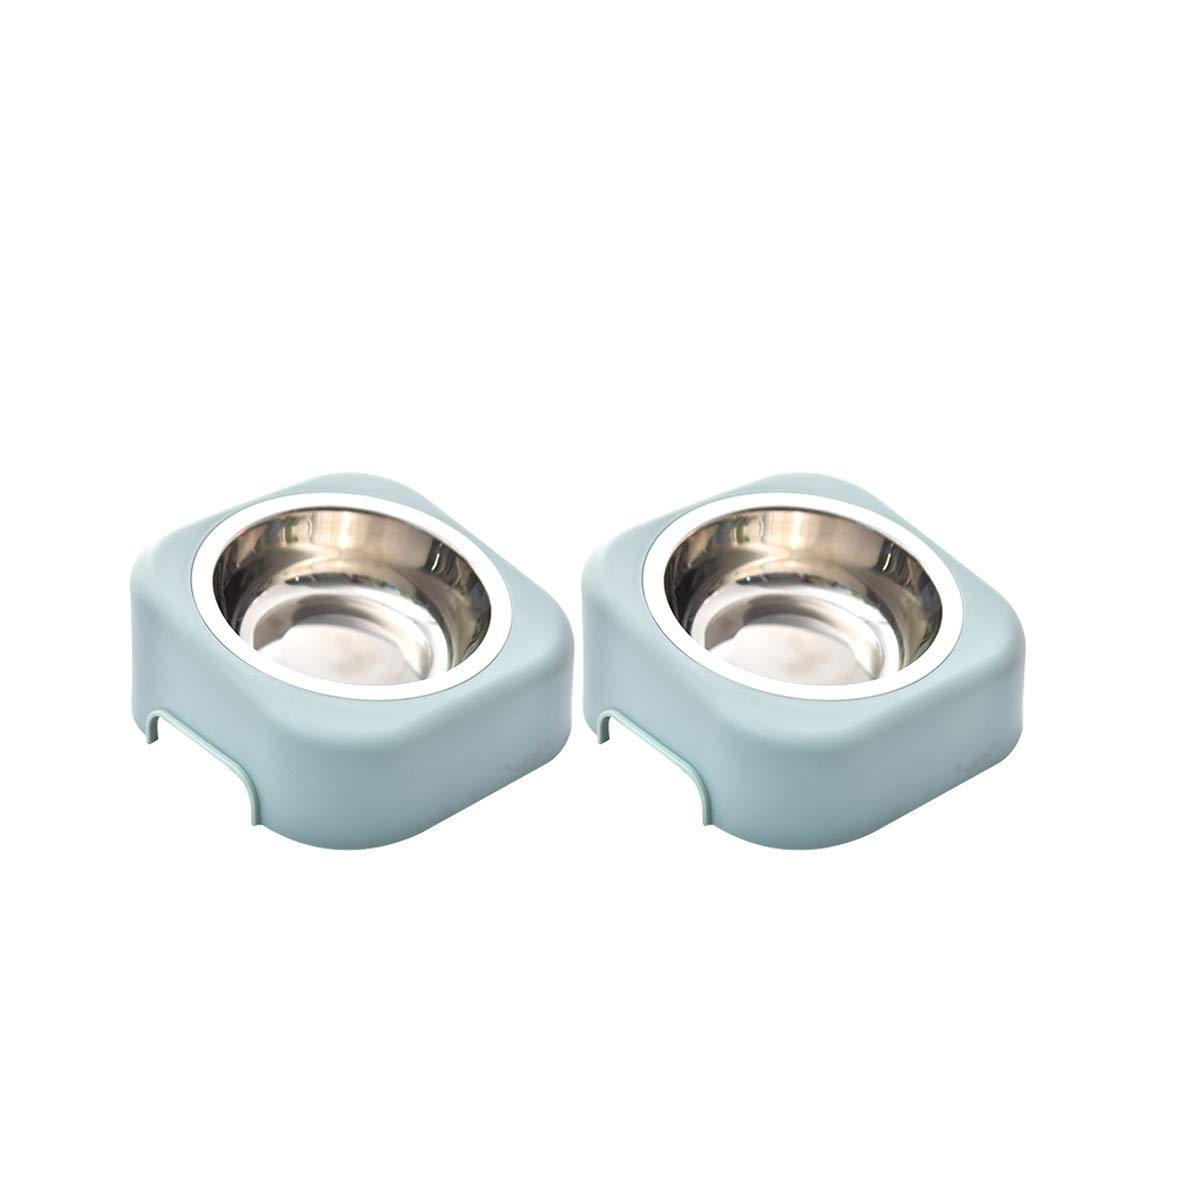 bluee Two bluee Two Qinniao Pet Bowl Dog Bowl Cat Bowl Stainless Steel Pink bluee Dog Bowl (color   bluee, UnitCount   Two)